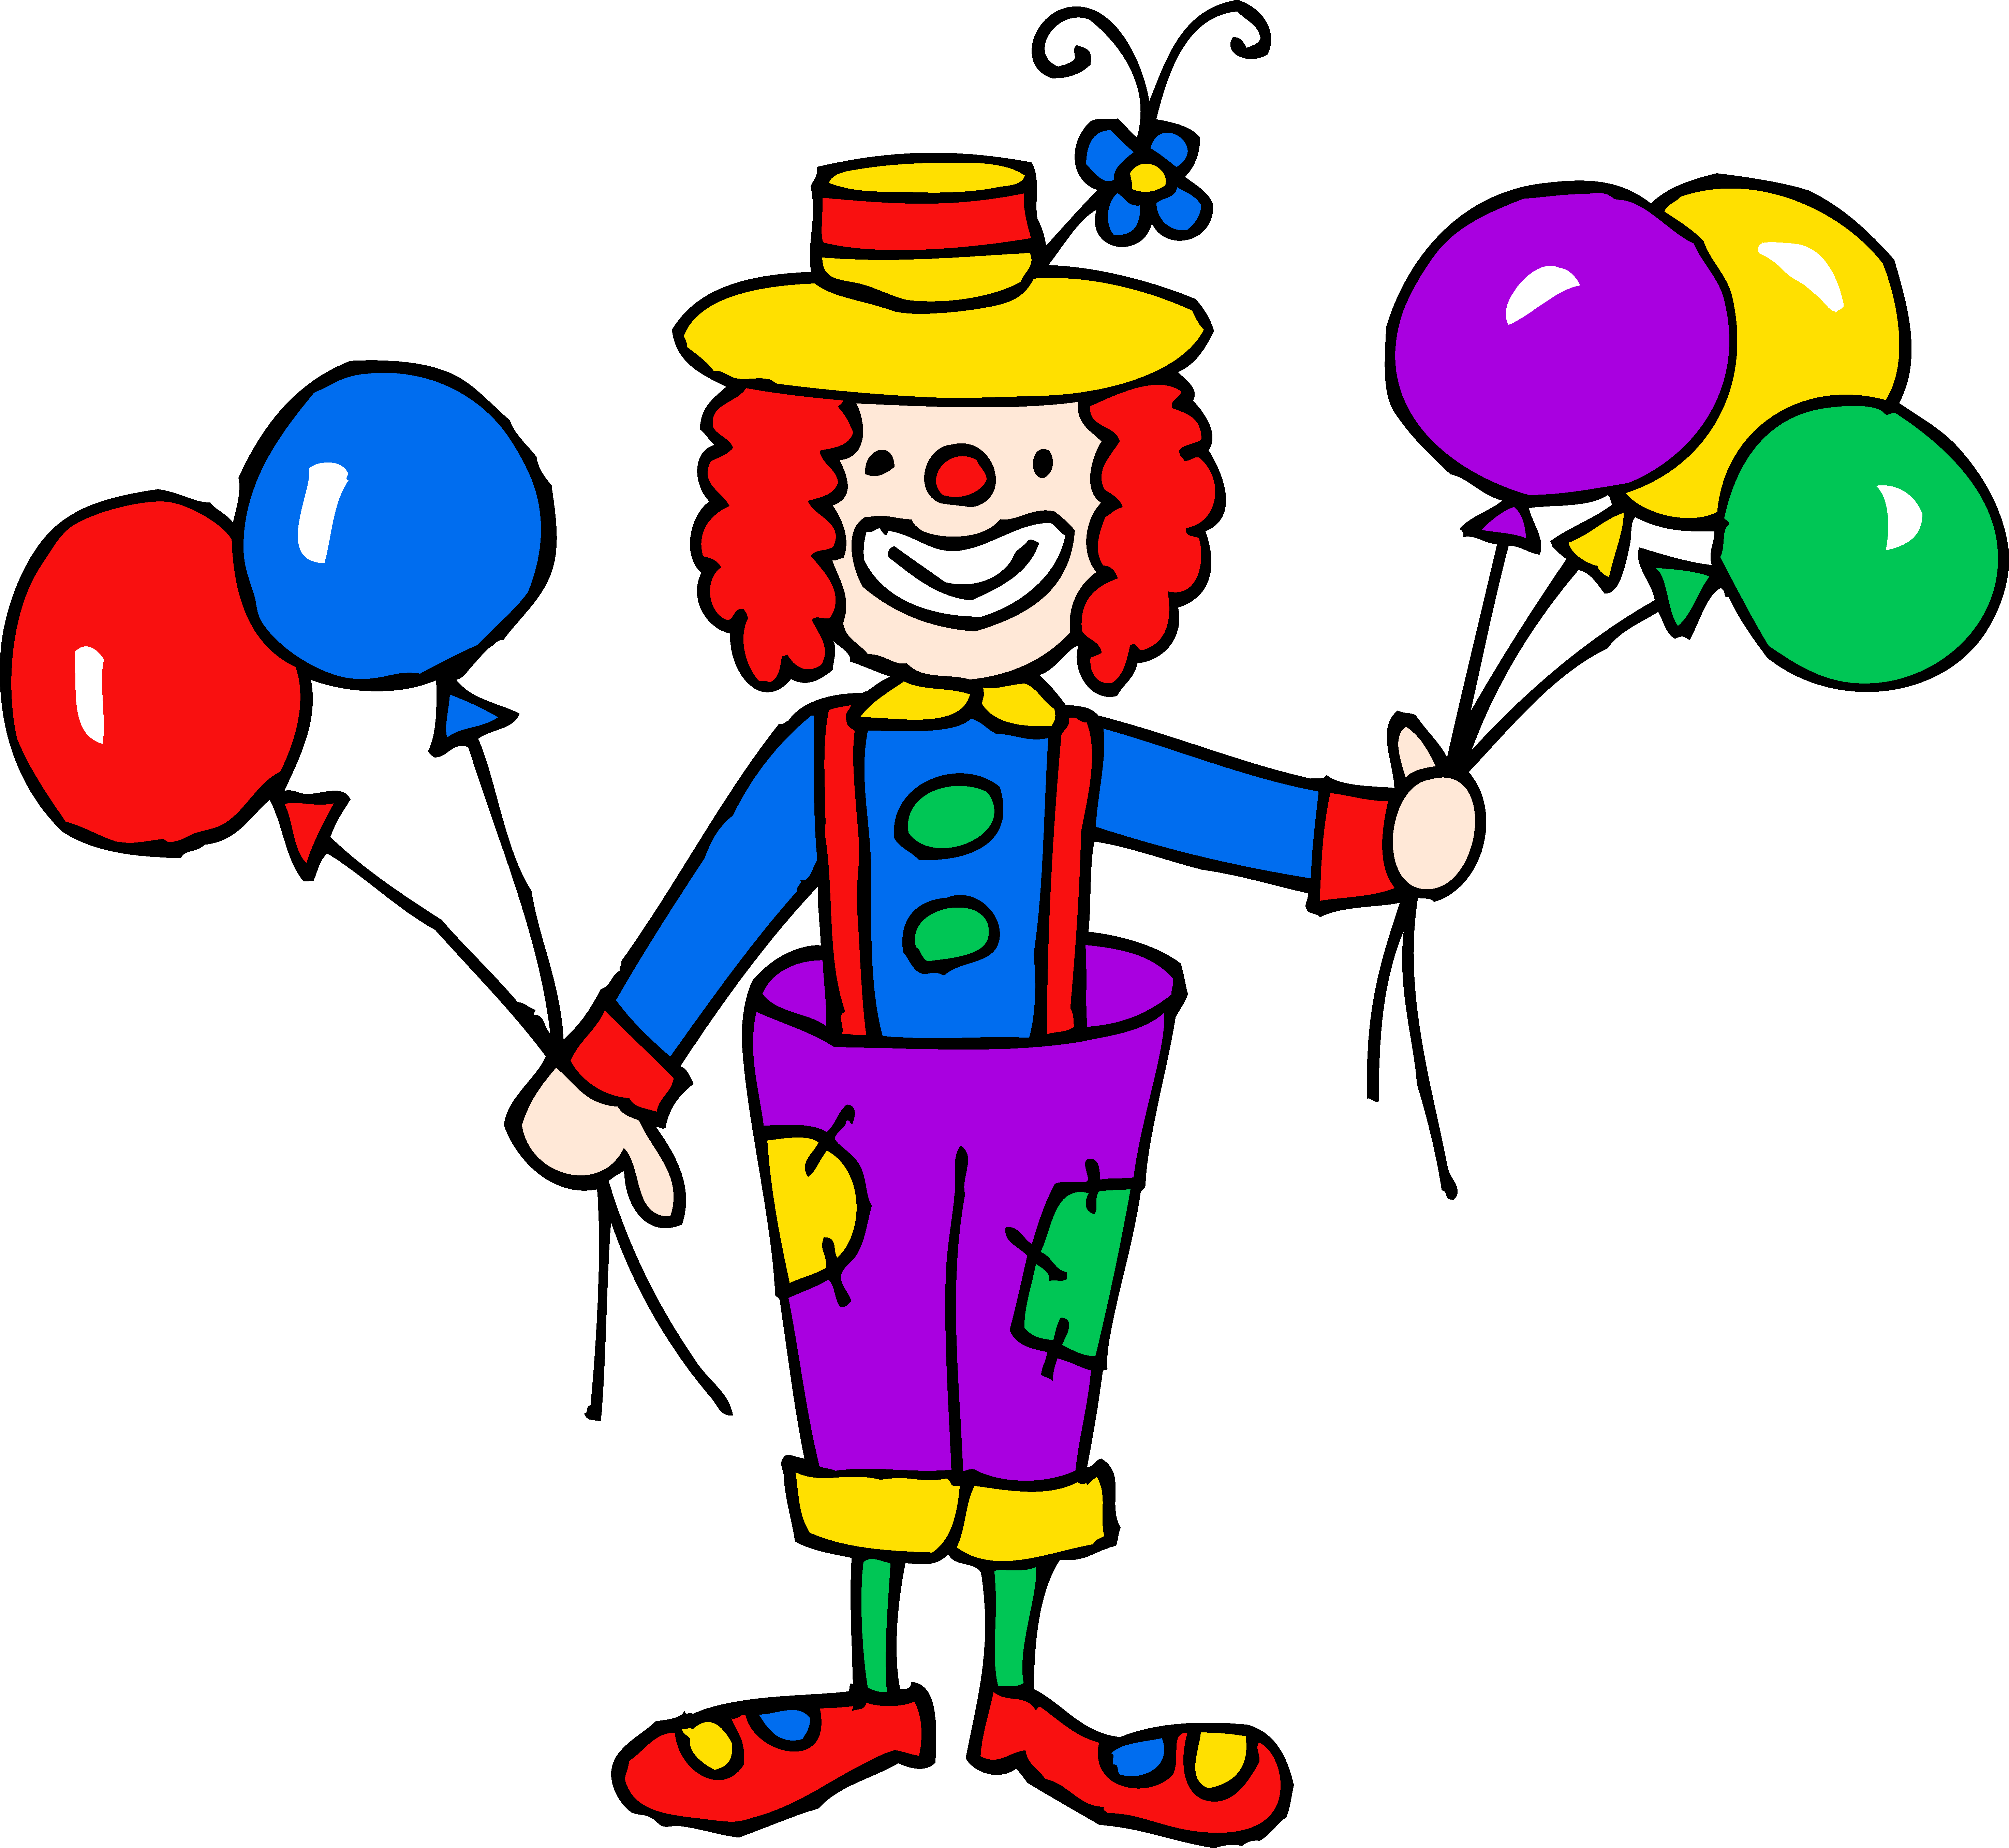 Clipart clown graphic download Cute Colorful Clown Clipart - Free Clip Art graphic download